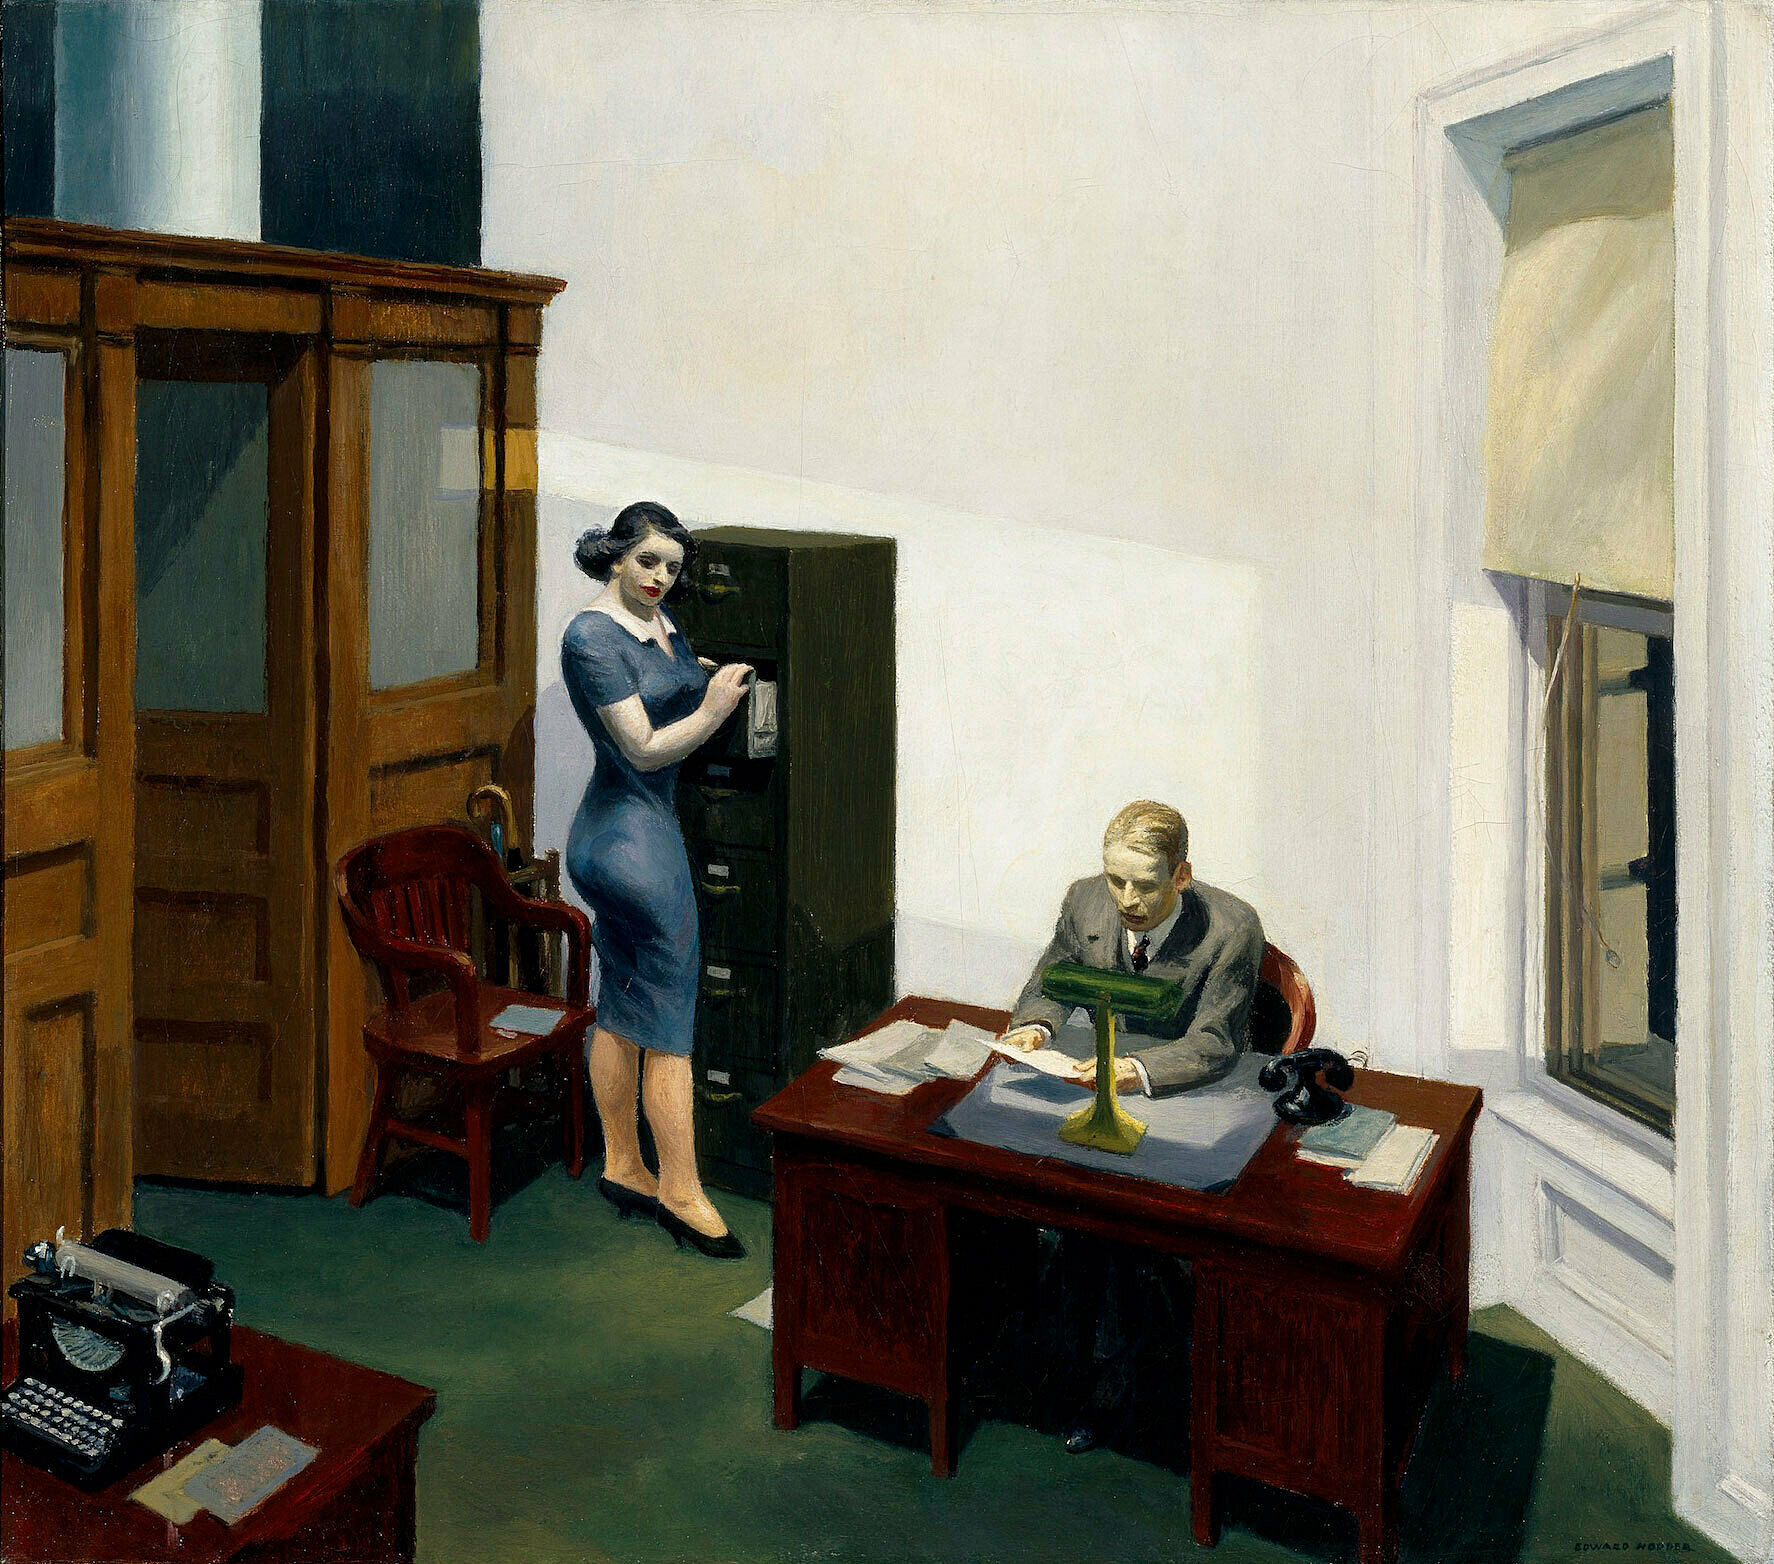 A painting of a woman and a man in an office at night.